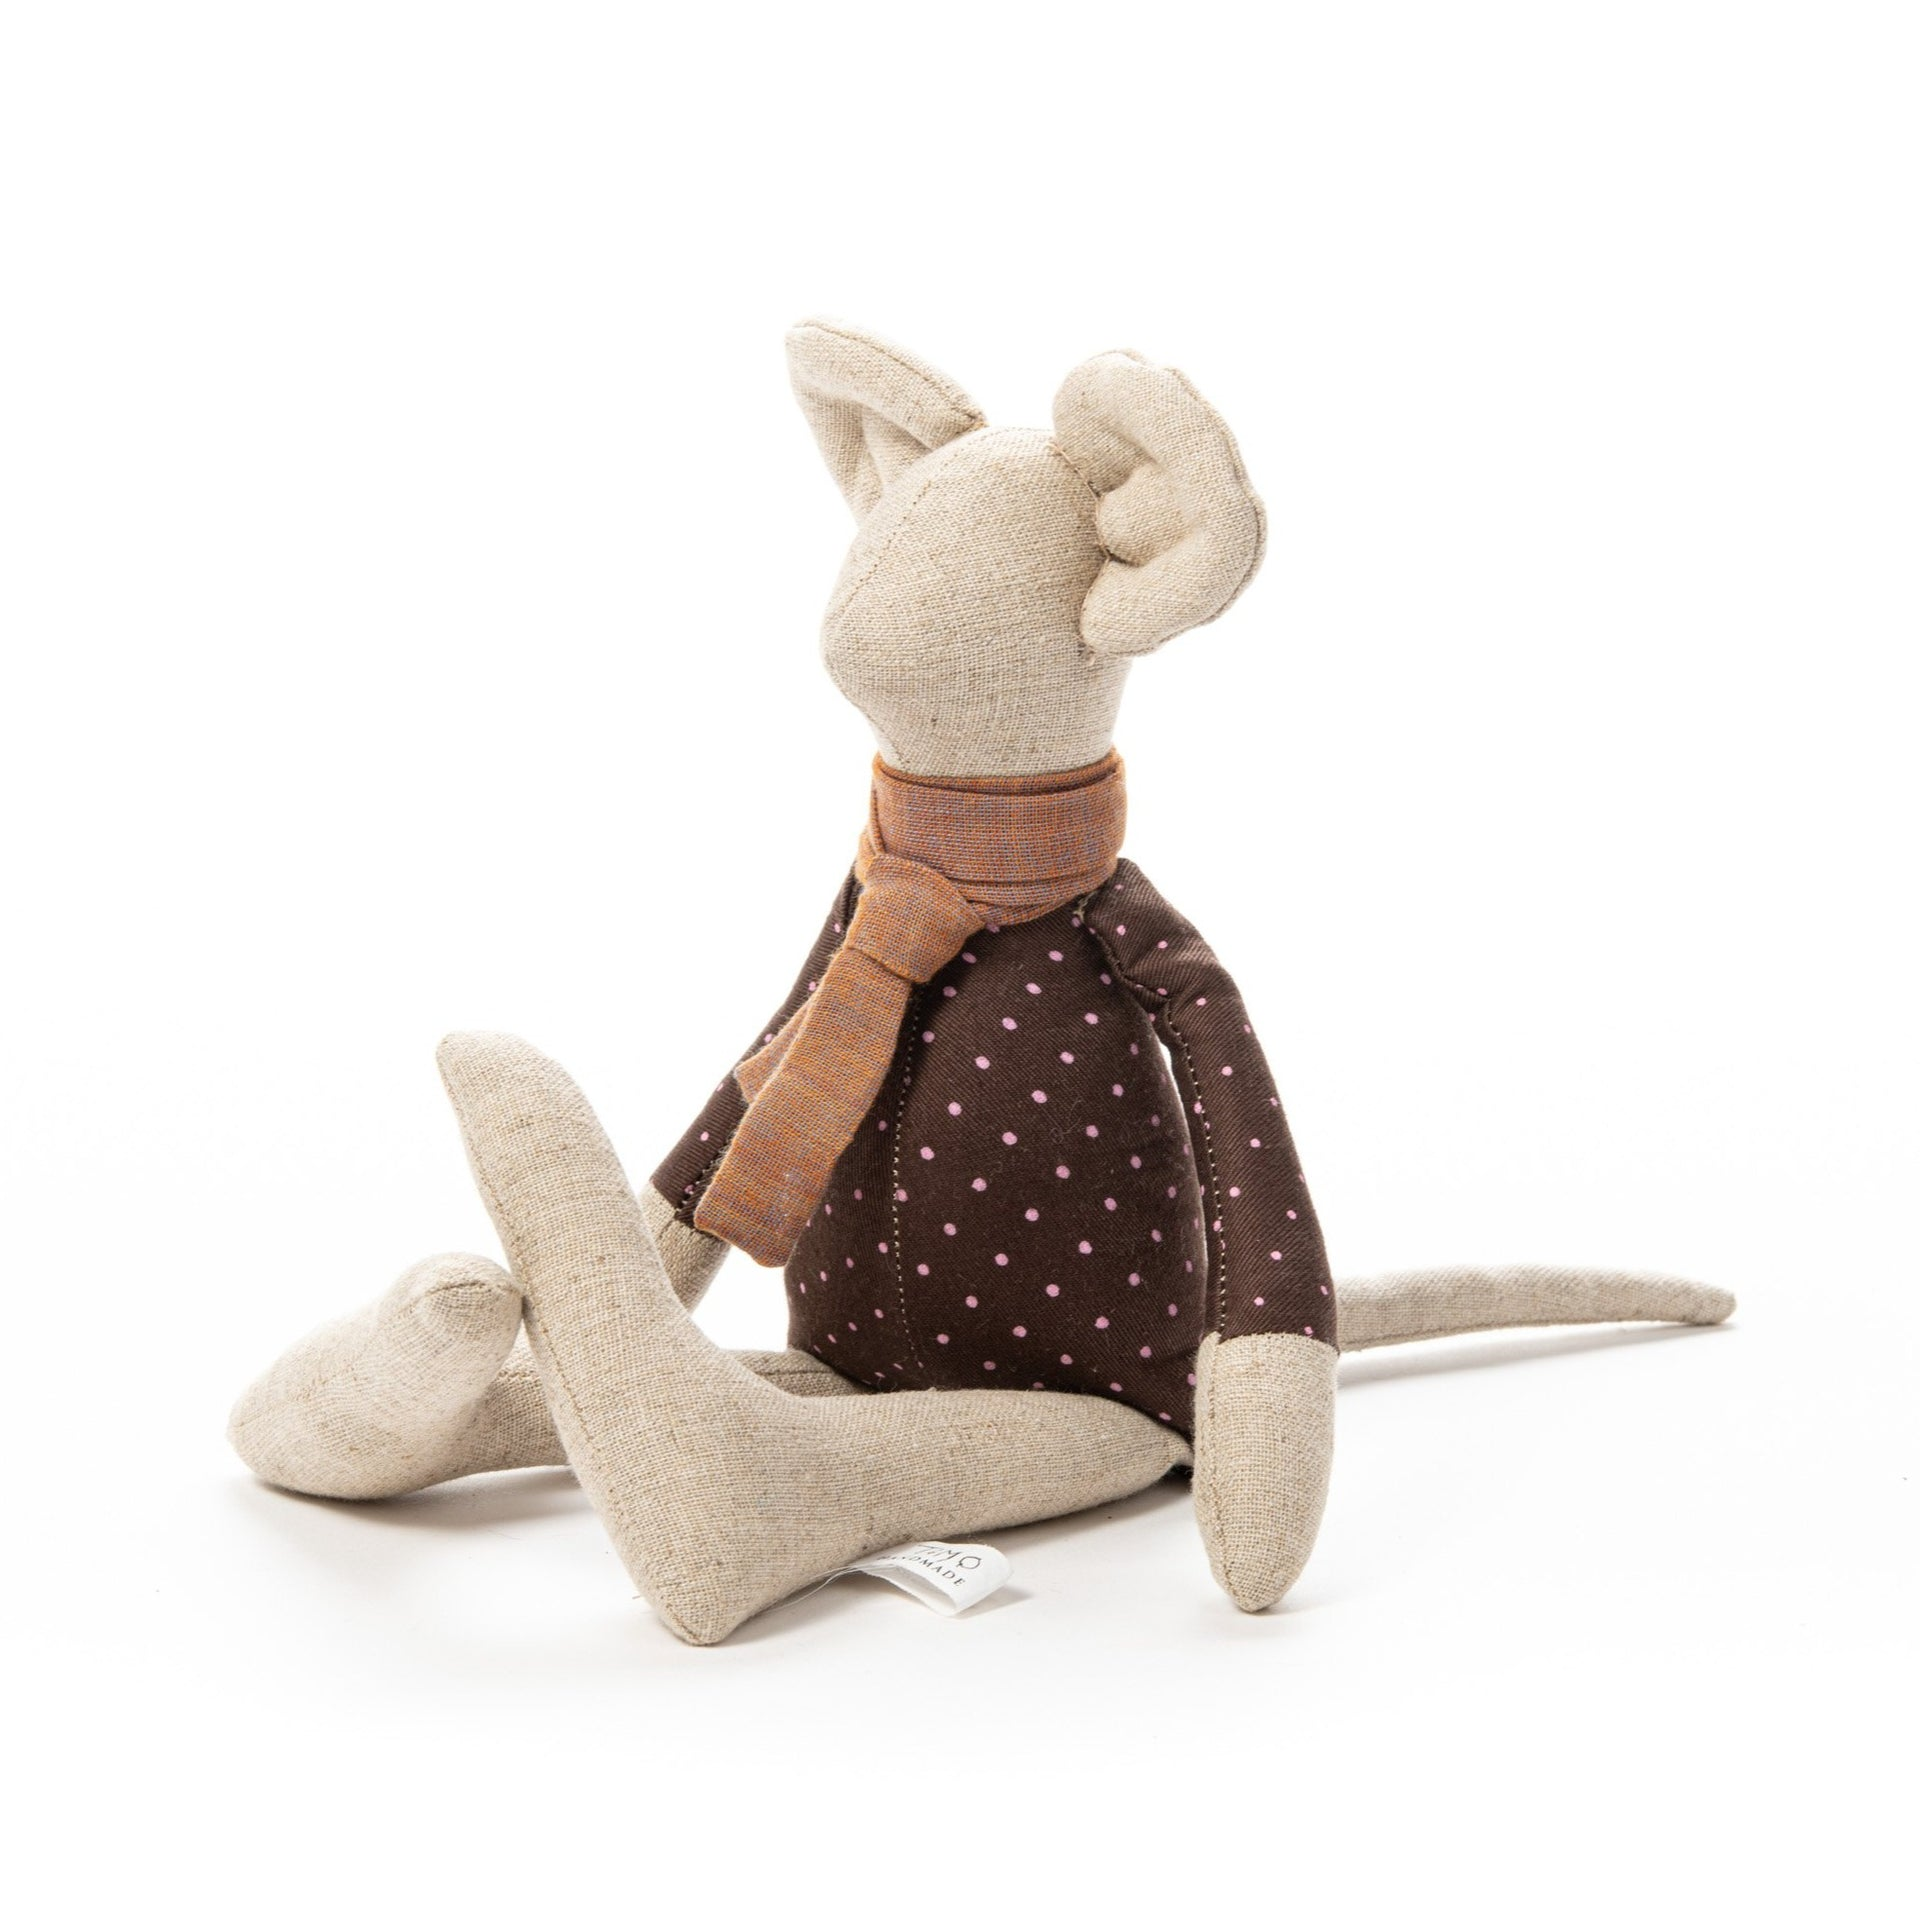 Little mouse doll Handmade doll Cuddly soft mouse toy Mini plush Stuffed animal toy Linen mouse toy Crib accessories Children's gift